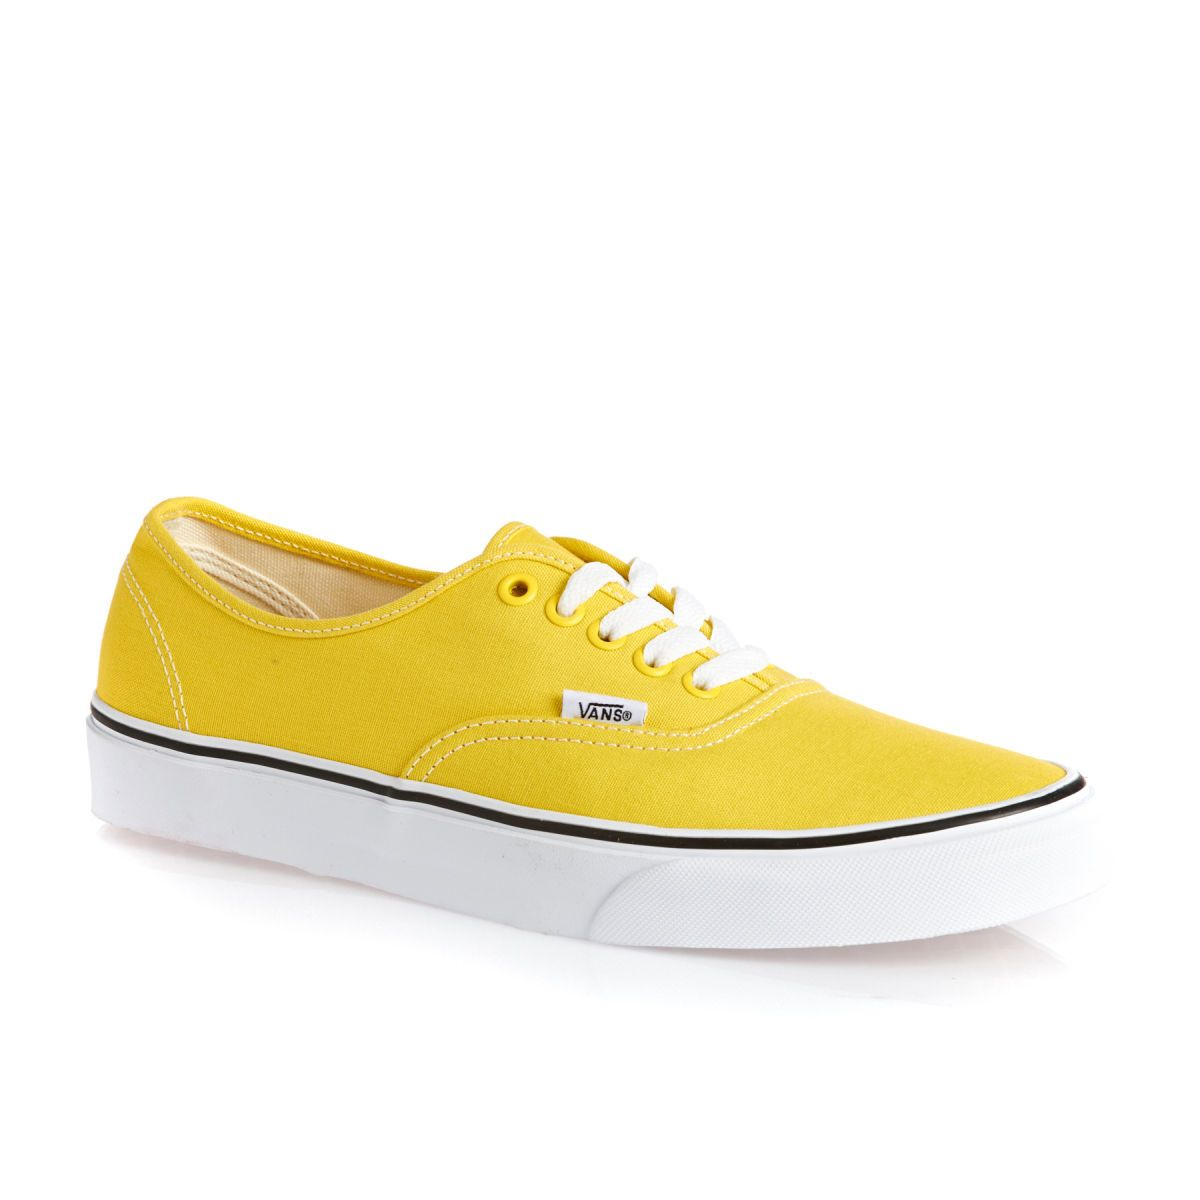 vans authentic yellow - Google Search  12c92c79d